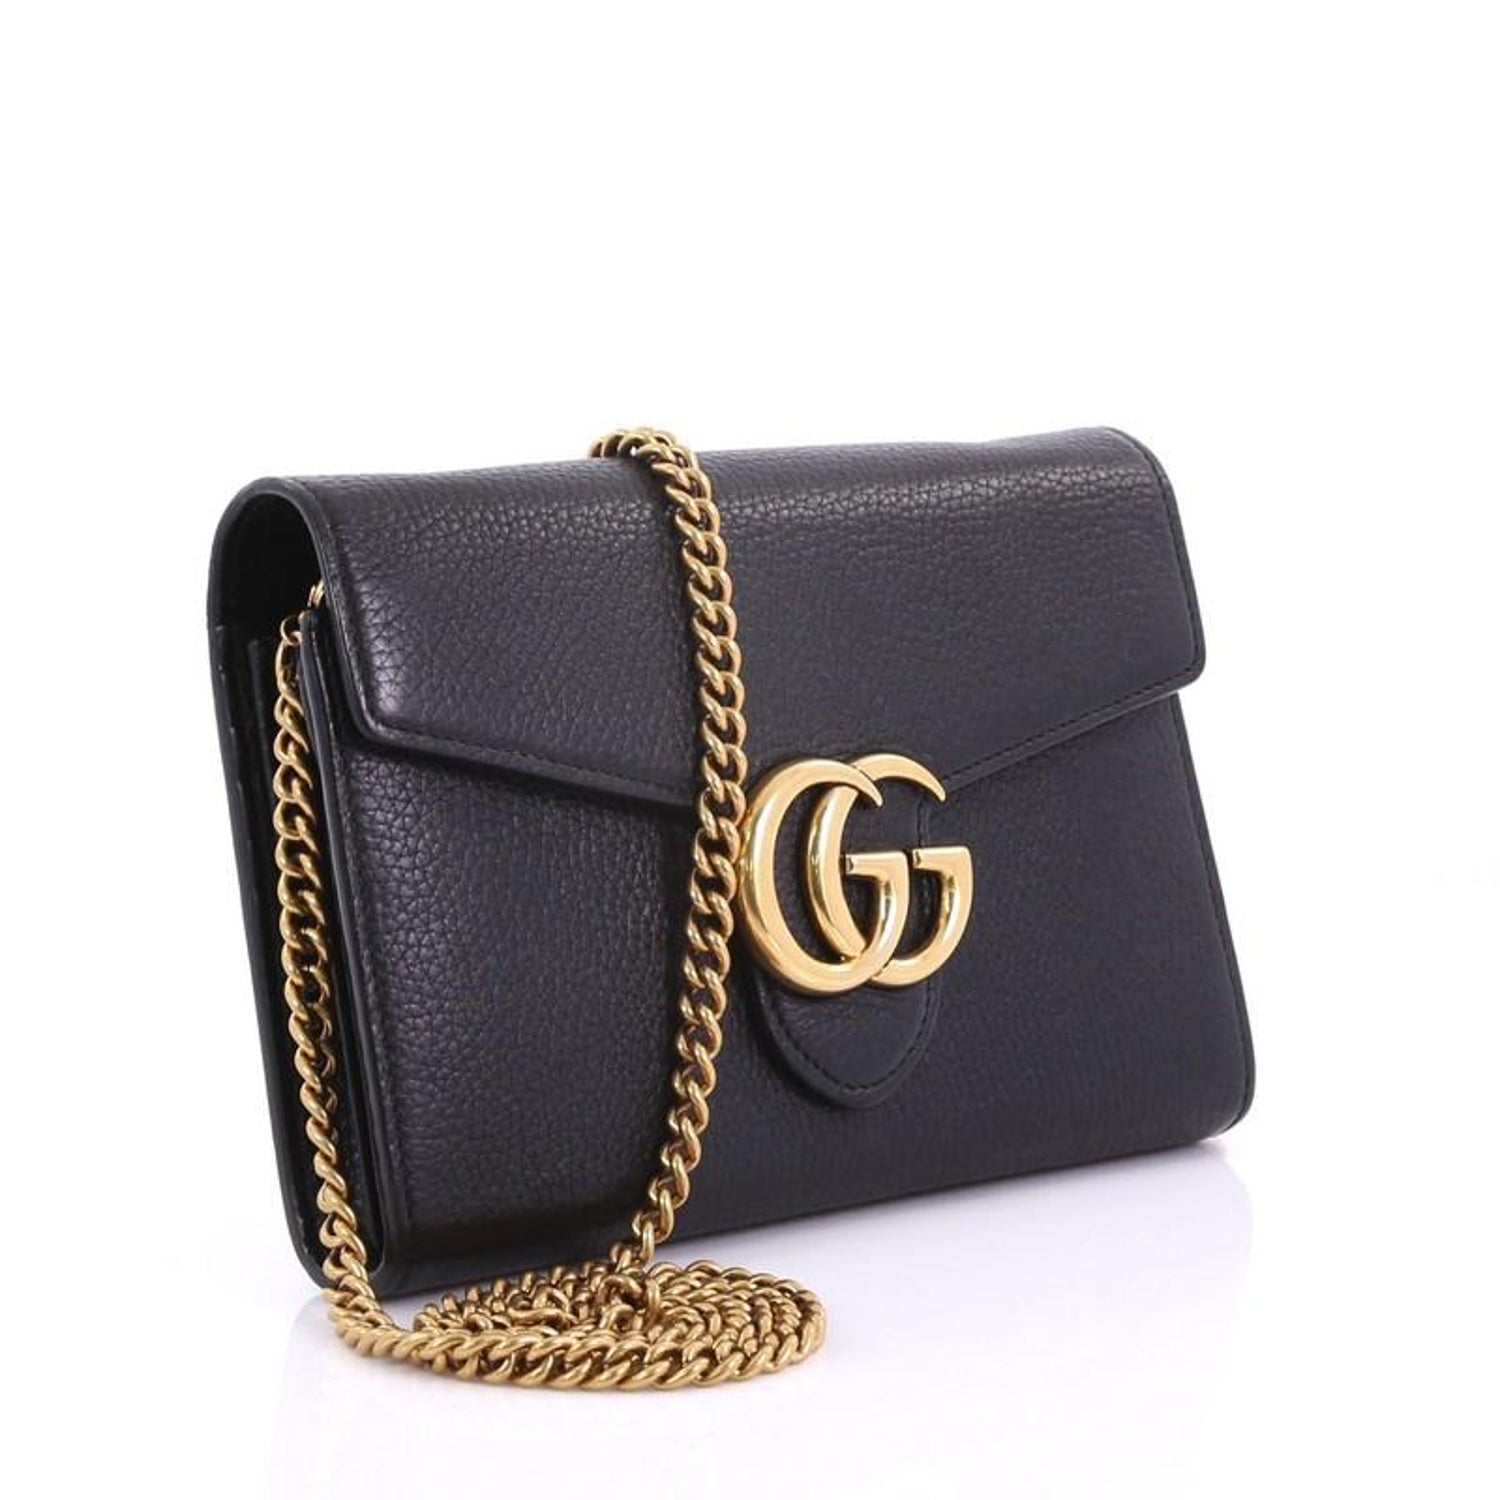 d7aafb37d9a Gucci GG Marmont Chain Wallet Leather Mini at 1stdibs